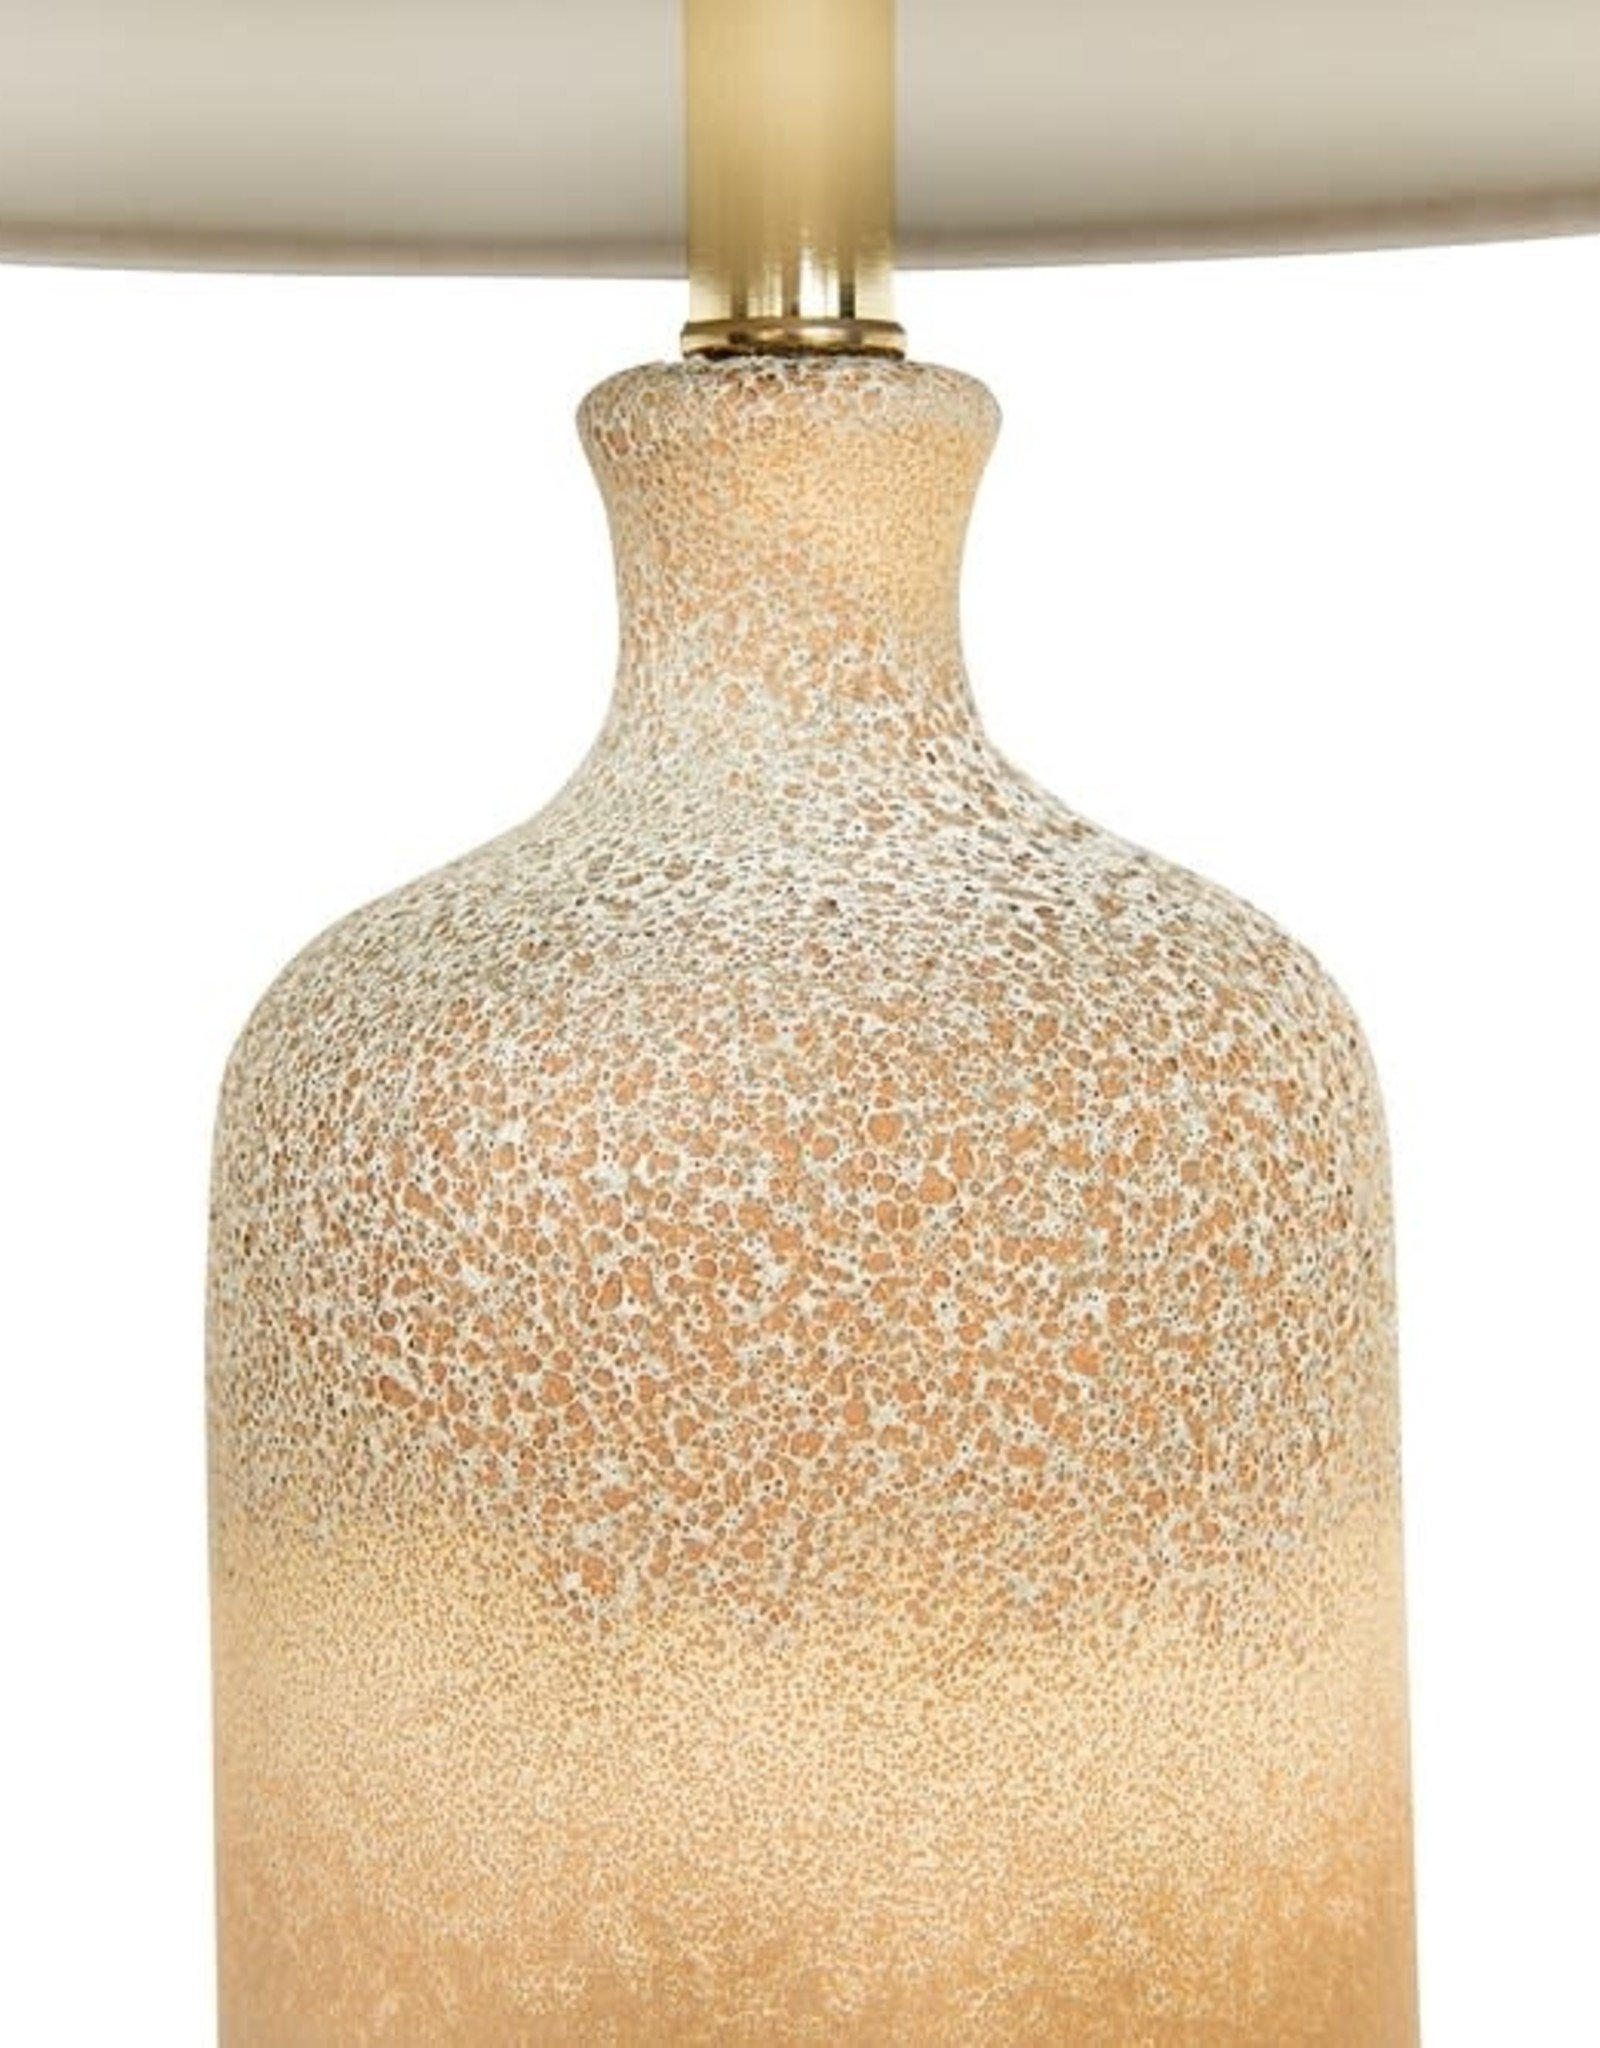 Reactive Glazed Beige Table Lamp